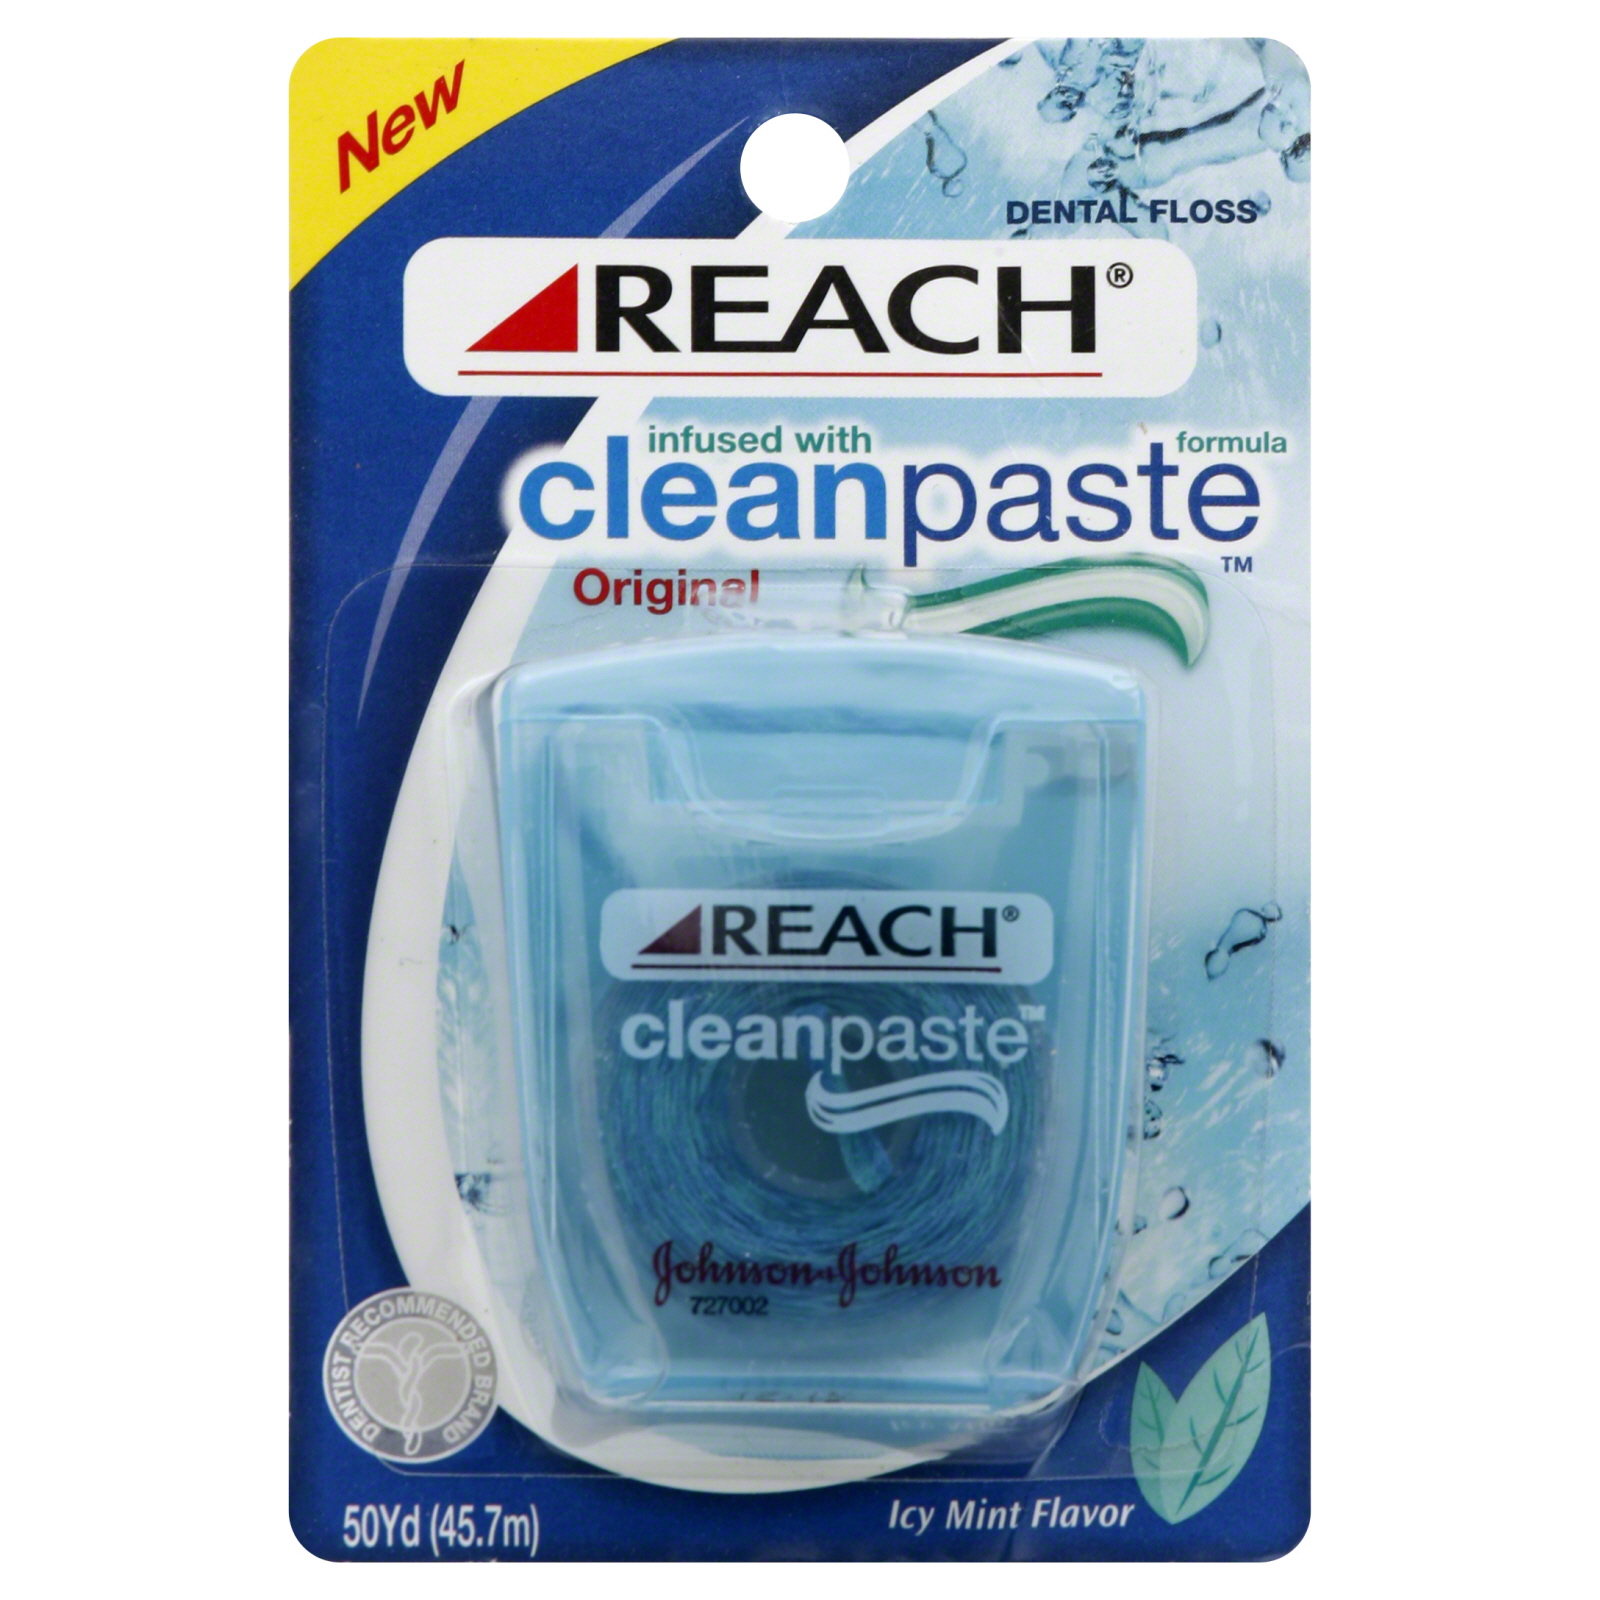 Dental Floss, Original, Icy Mint Flavor, 50 yd                                                                                   at mygofer.com